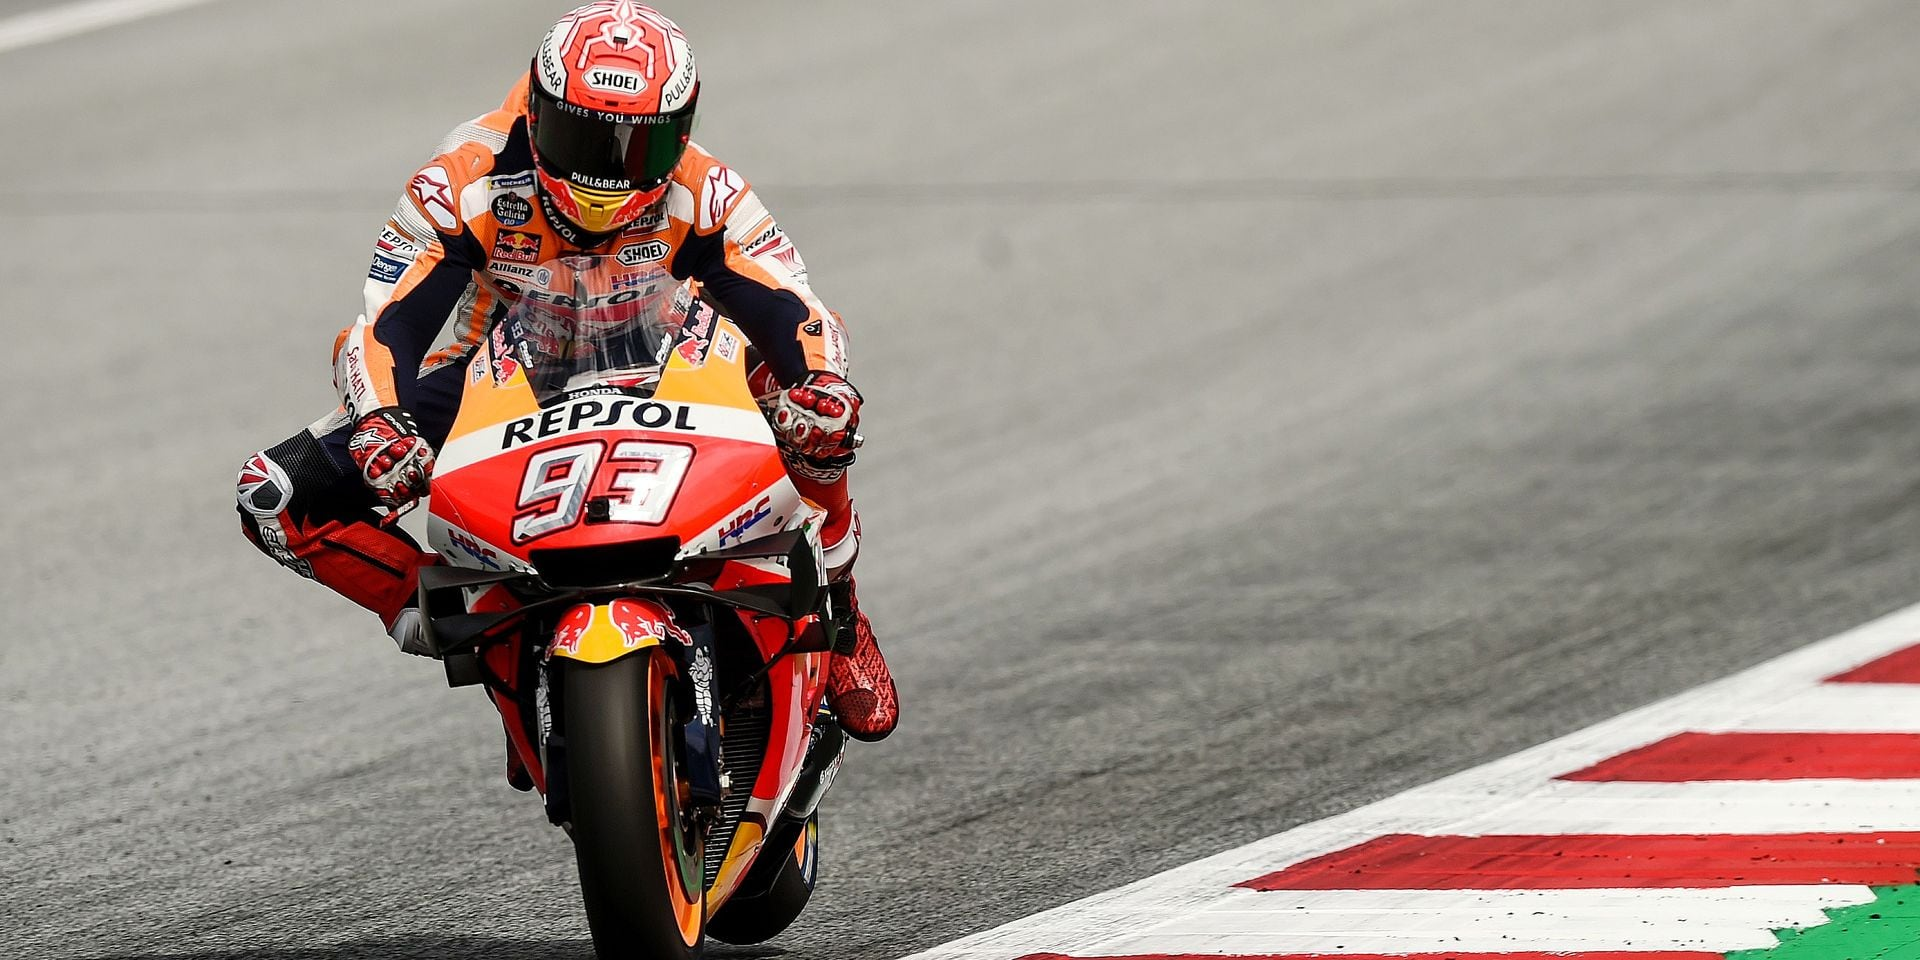 Repsol Honda Team's Spanish rider Marc Marquez rides his motorbike during the qualifying session of the Austrian Moto GP Grand Prix in Spielberg on August 10, 2019. (Photo by VLADIMIR SIMICEK / AFP)